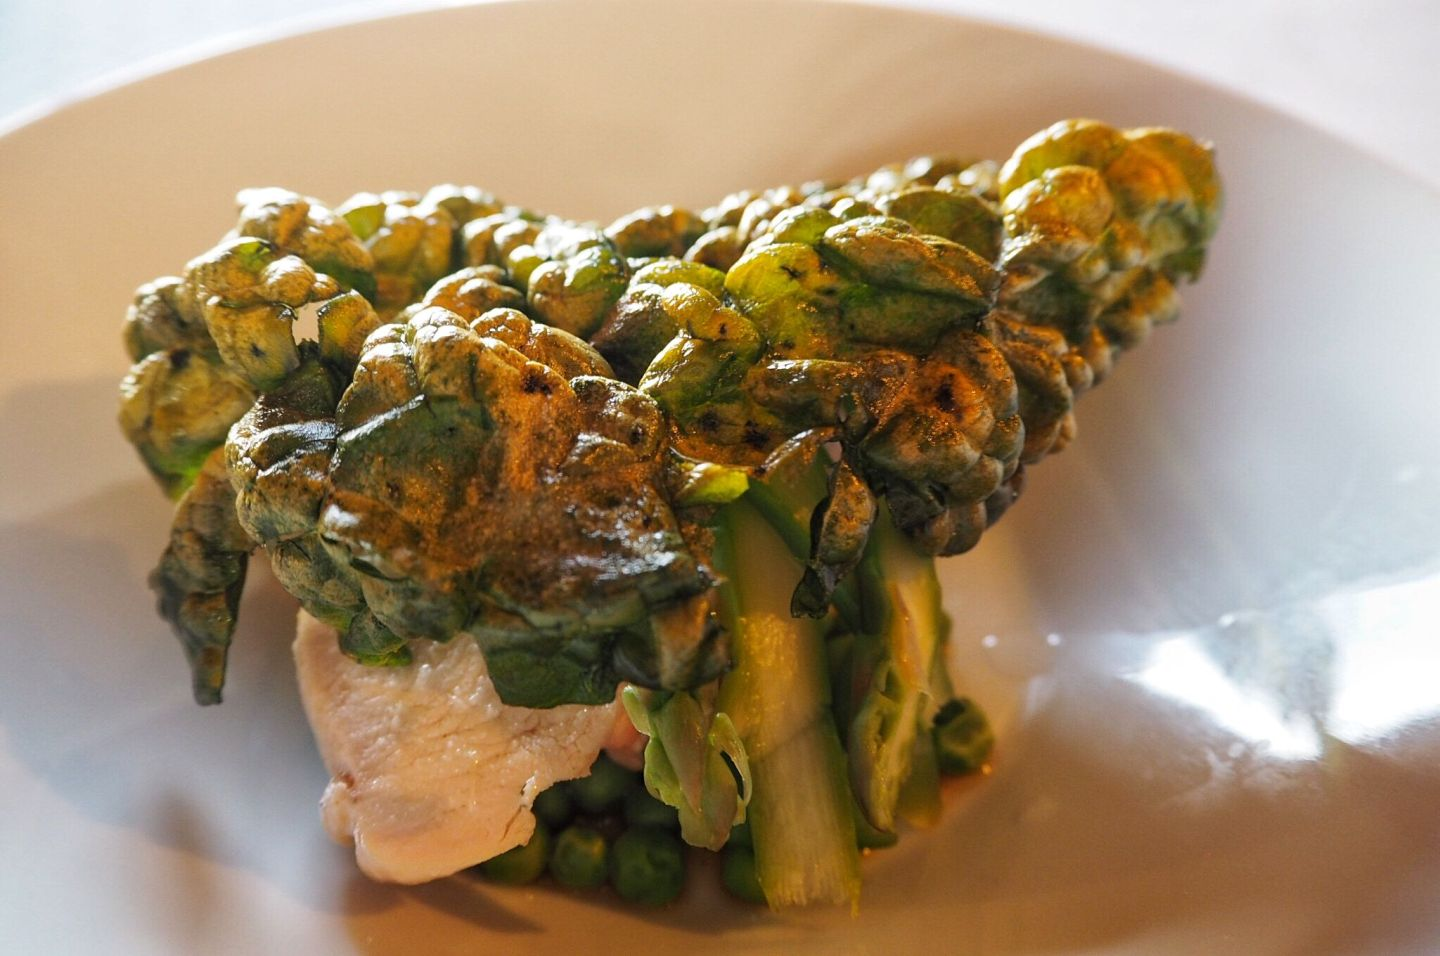 Cotswolds-white-chicken-with-cavolo-nero-Brothers-Supper-Milton-Keynes